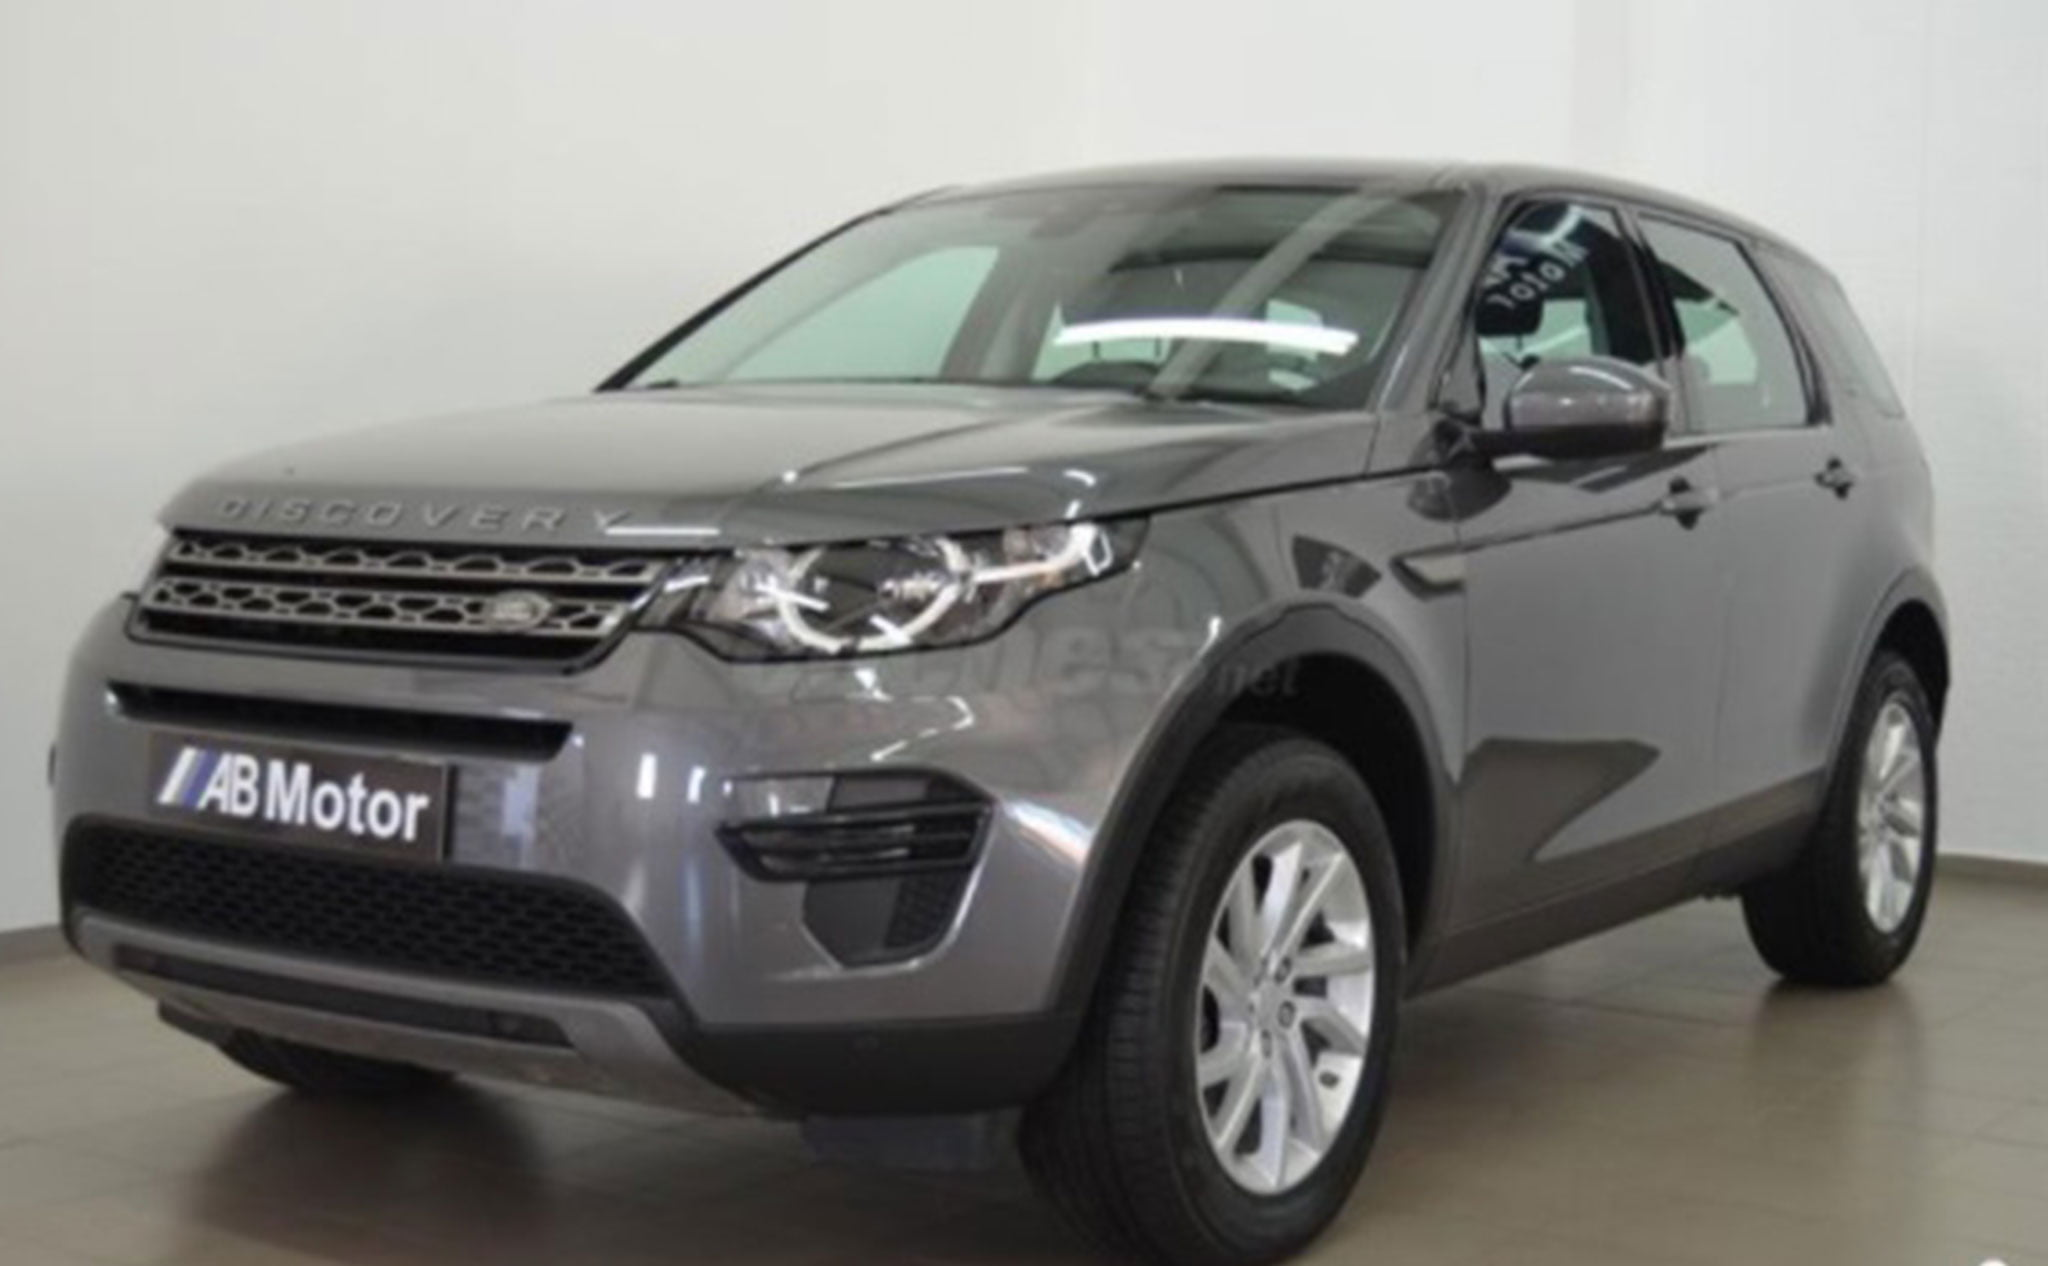 Land Rover Discovery Sport 2.0 L – AB Motor